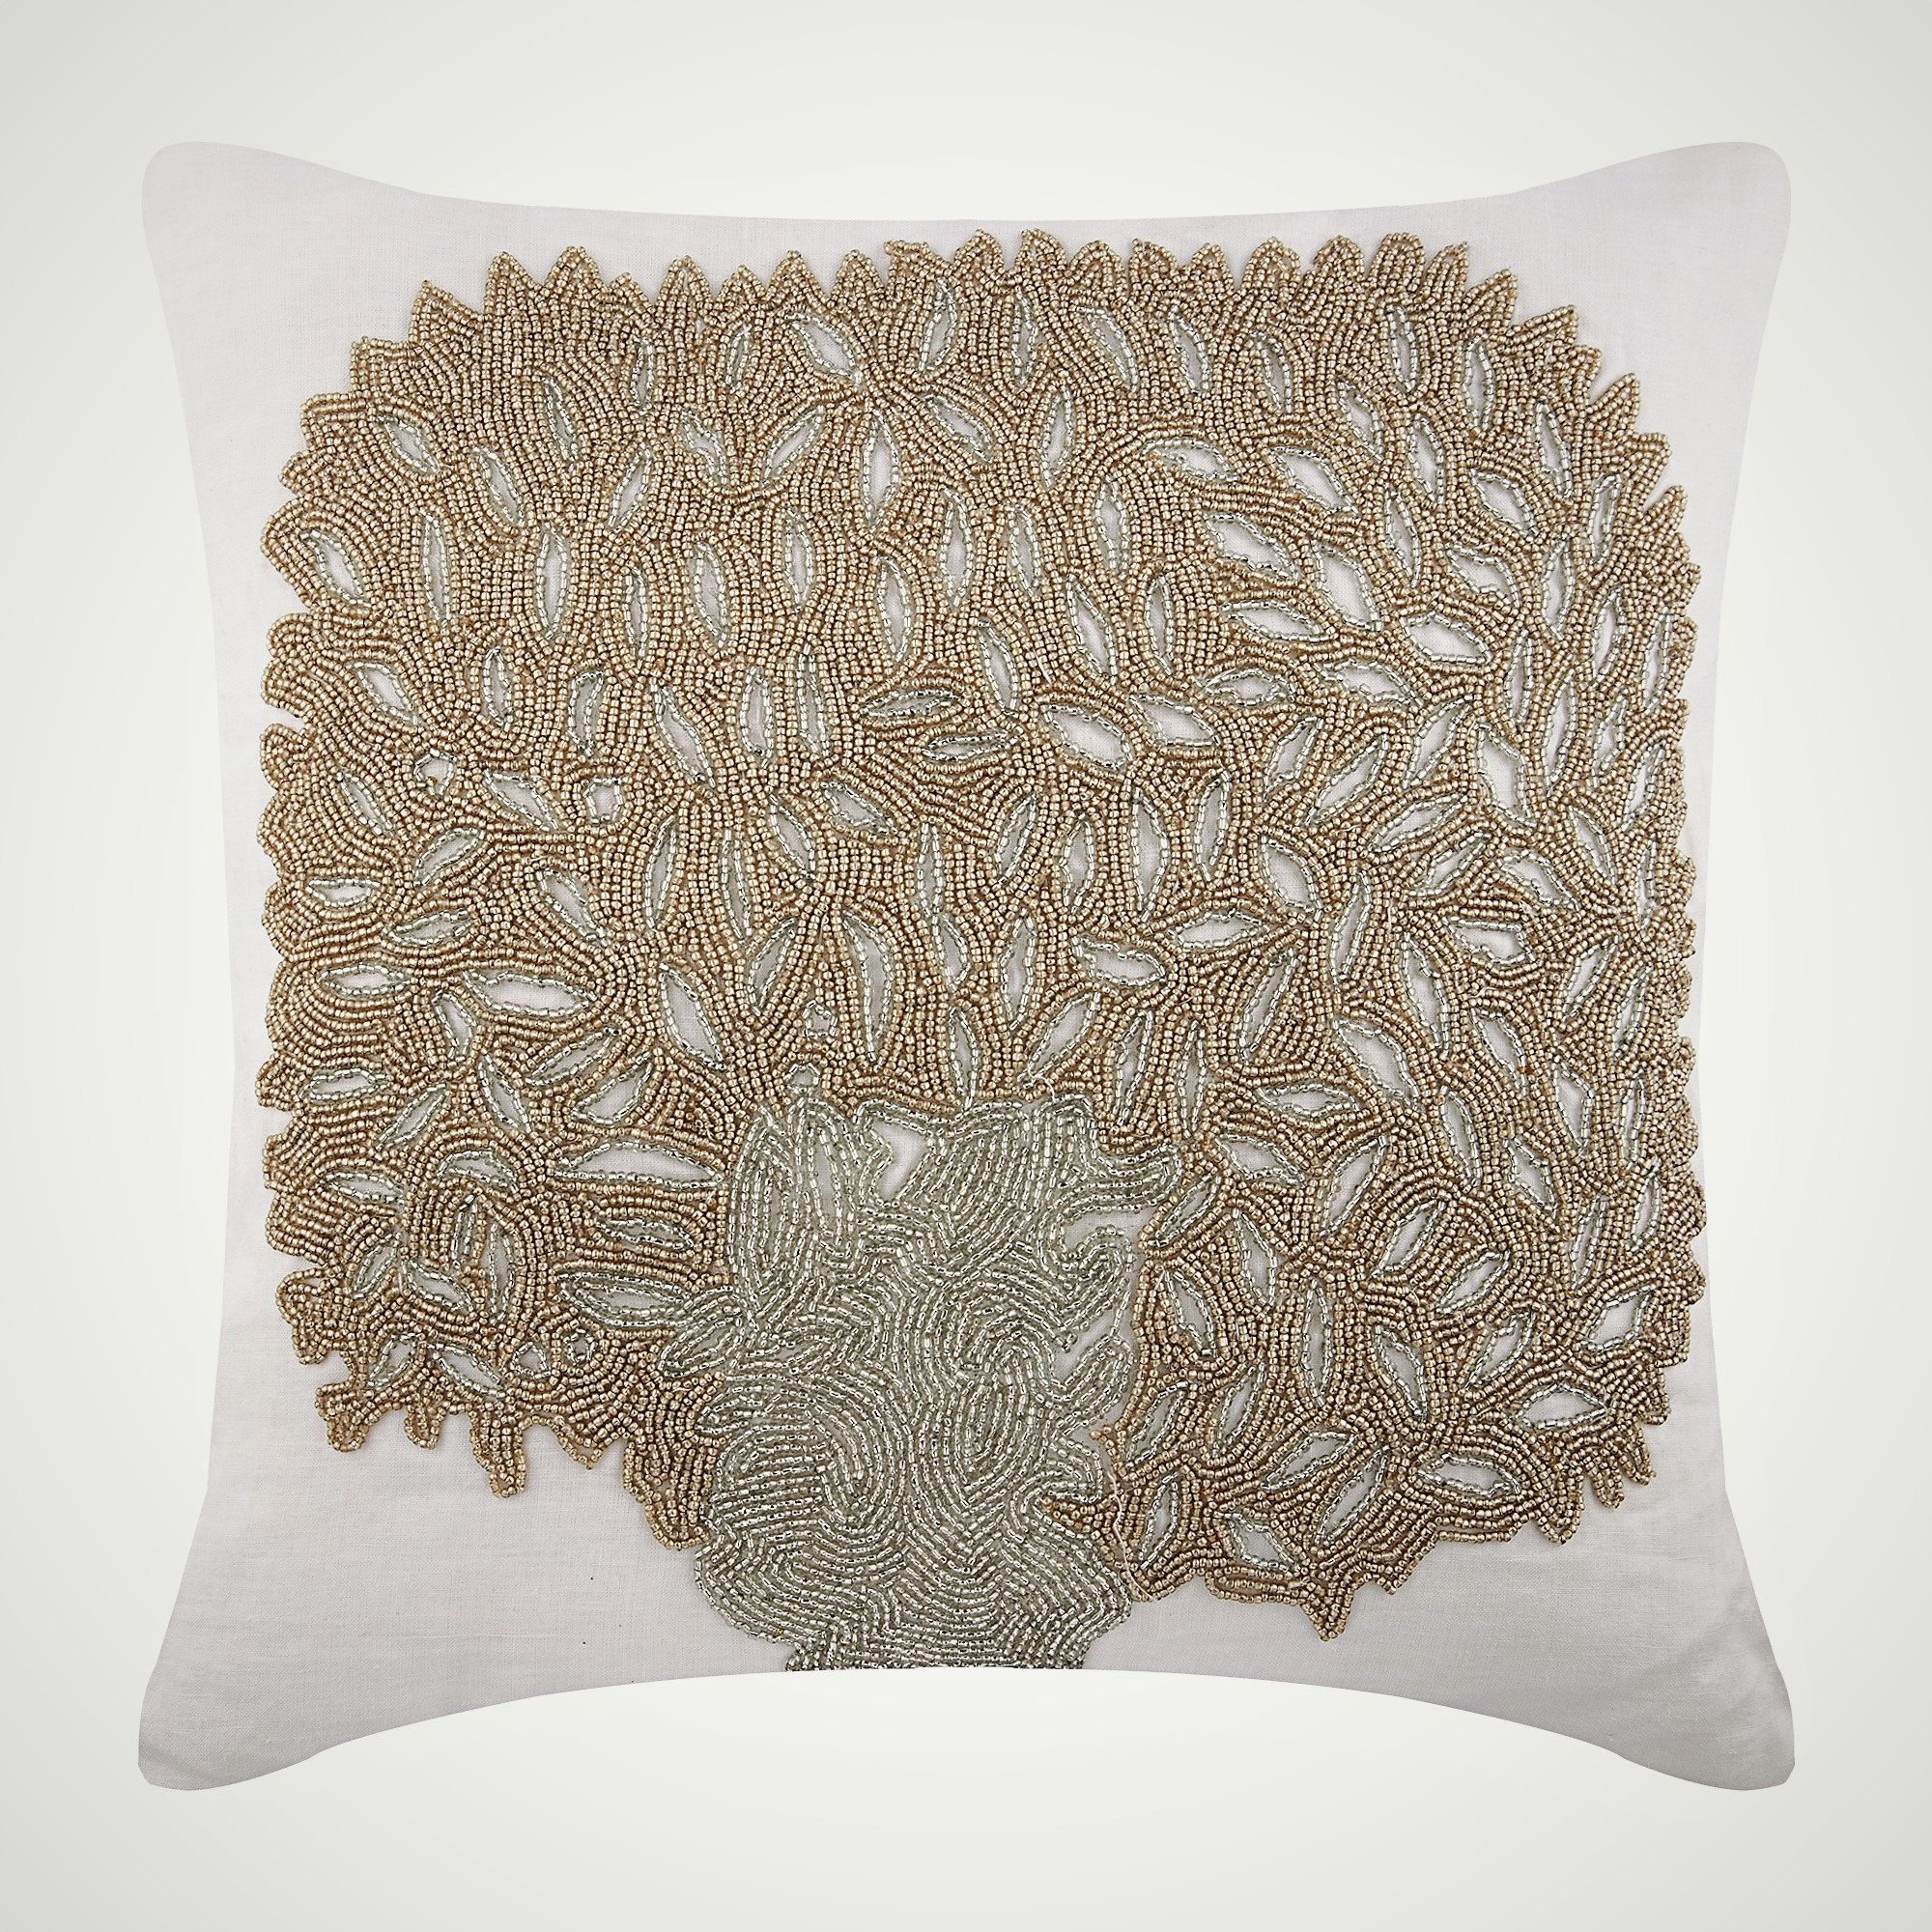 Ivory Decorative Throw Pillow Covers